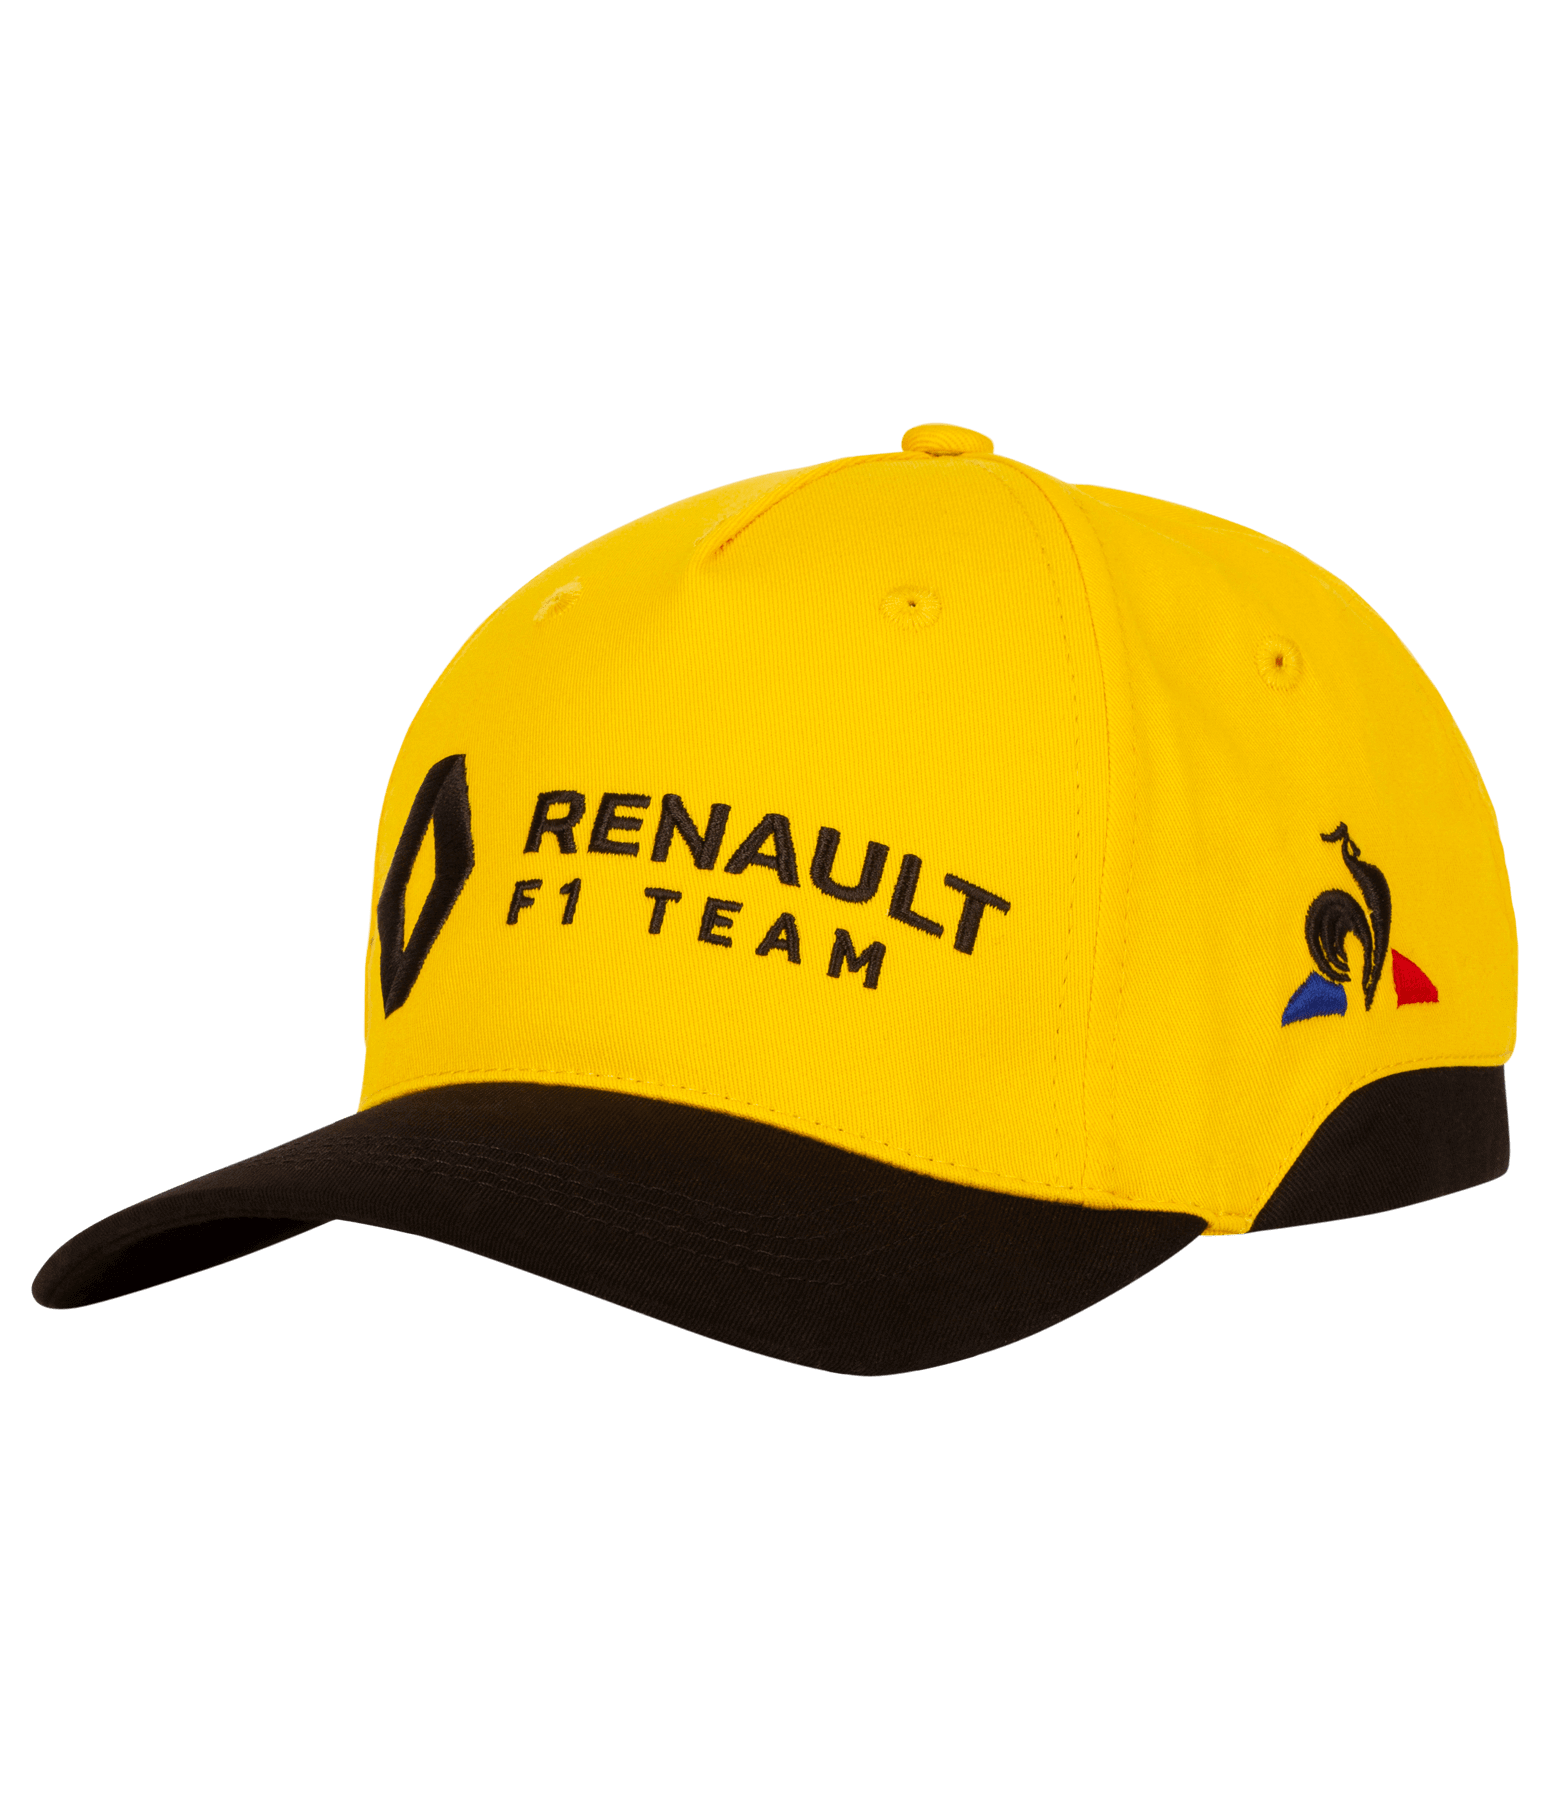 RENAULT F1® TEAM 2019 cap - yellow